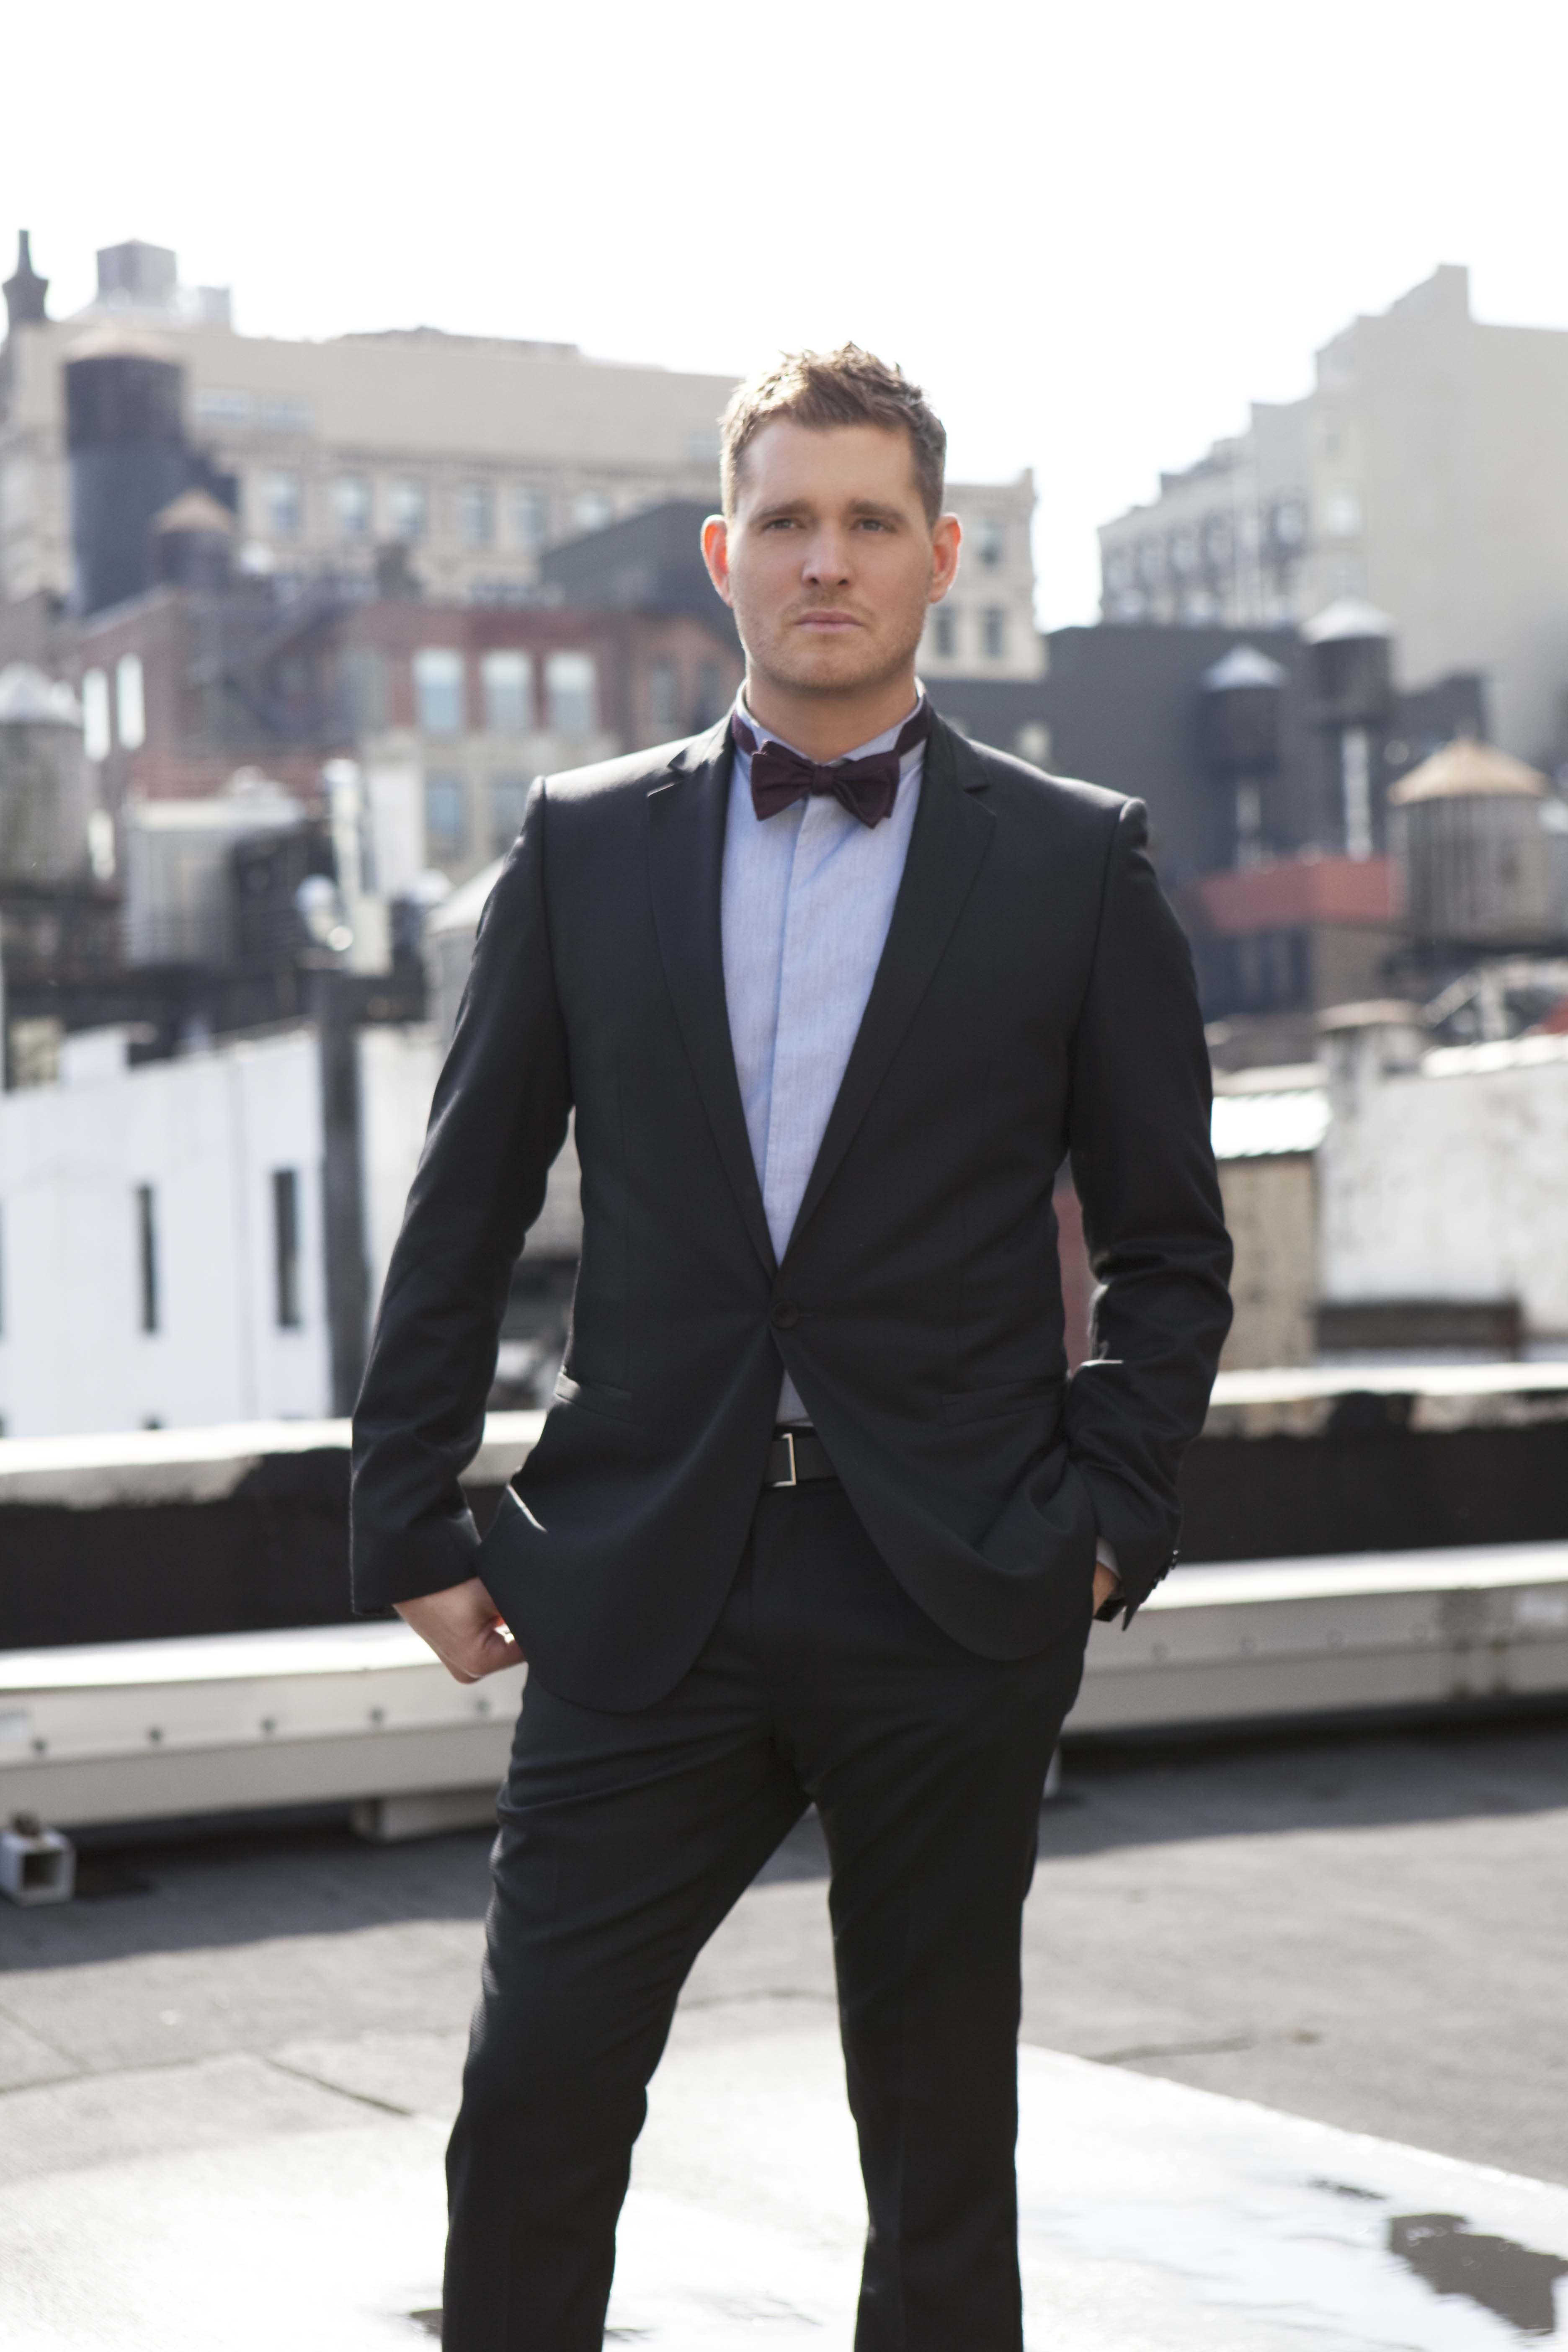 Michael Buble photo 39 of 44 pics, wallpapers